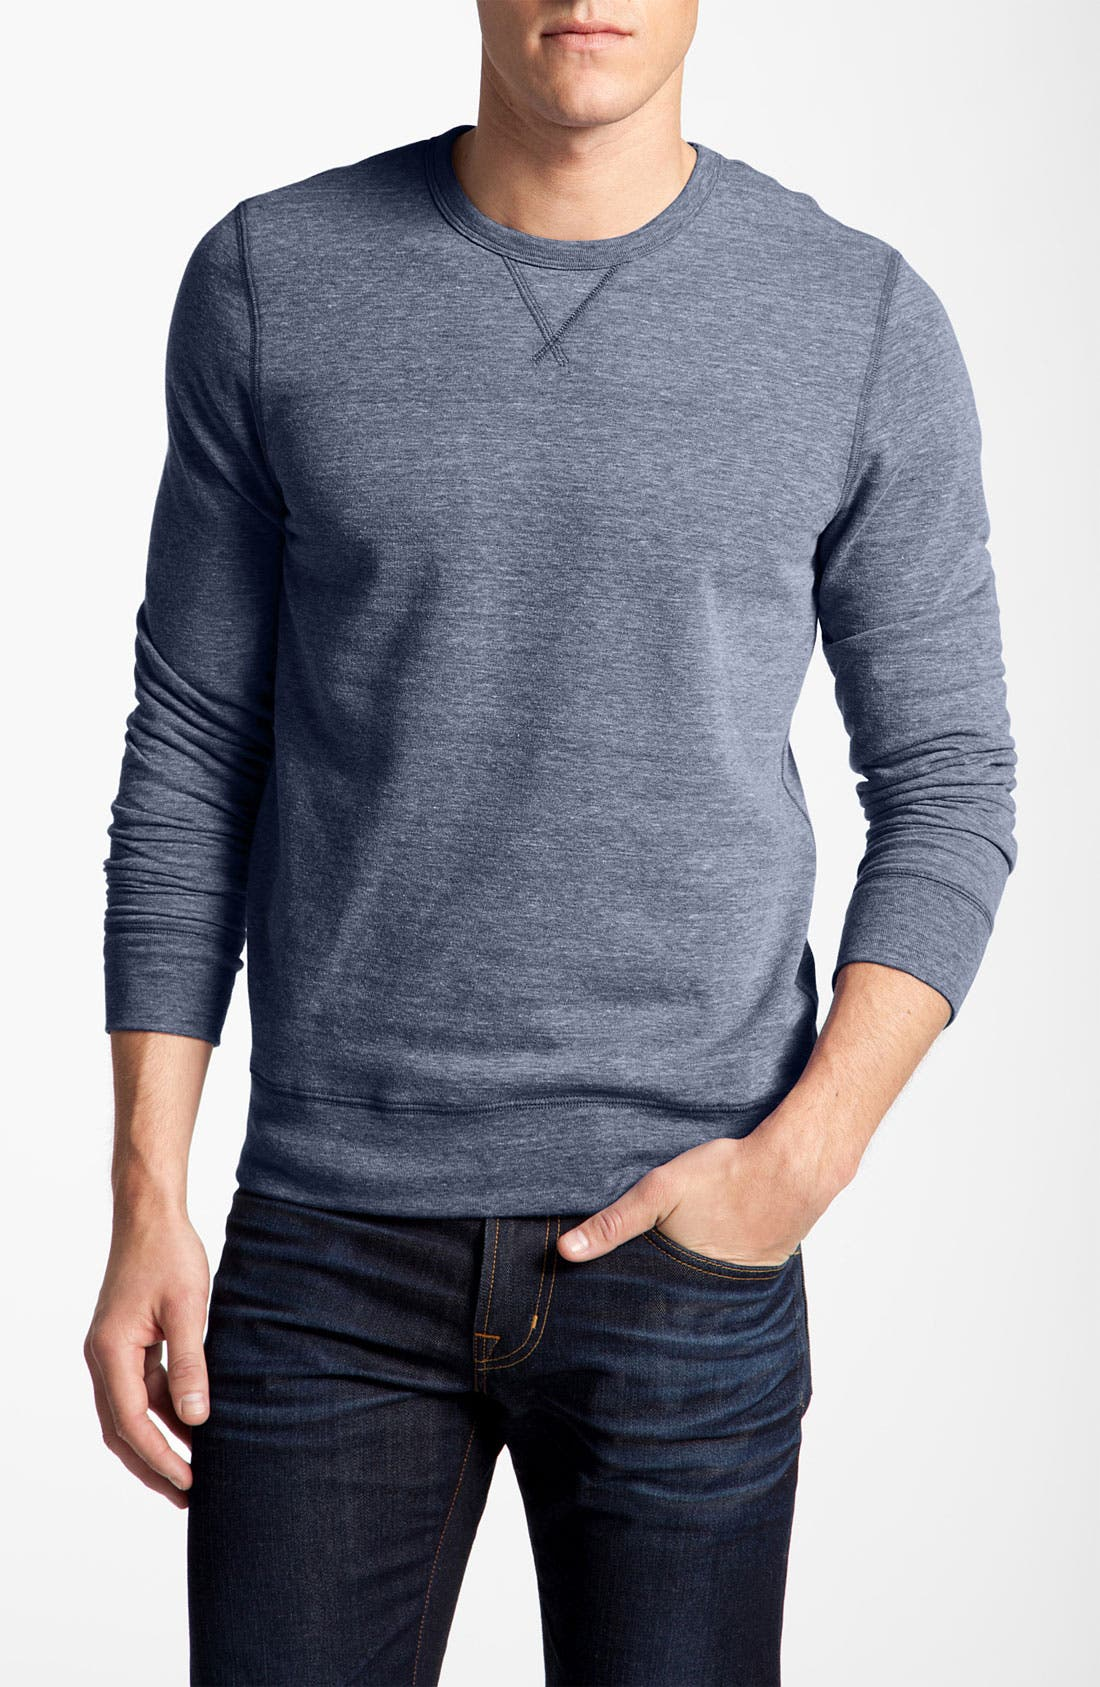 Main Image - 1901 Trim Fit Crewneck Sweatshirt